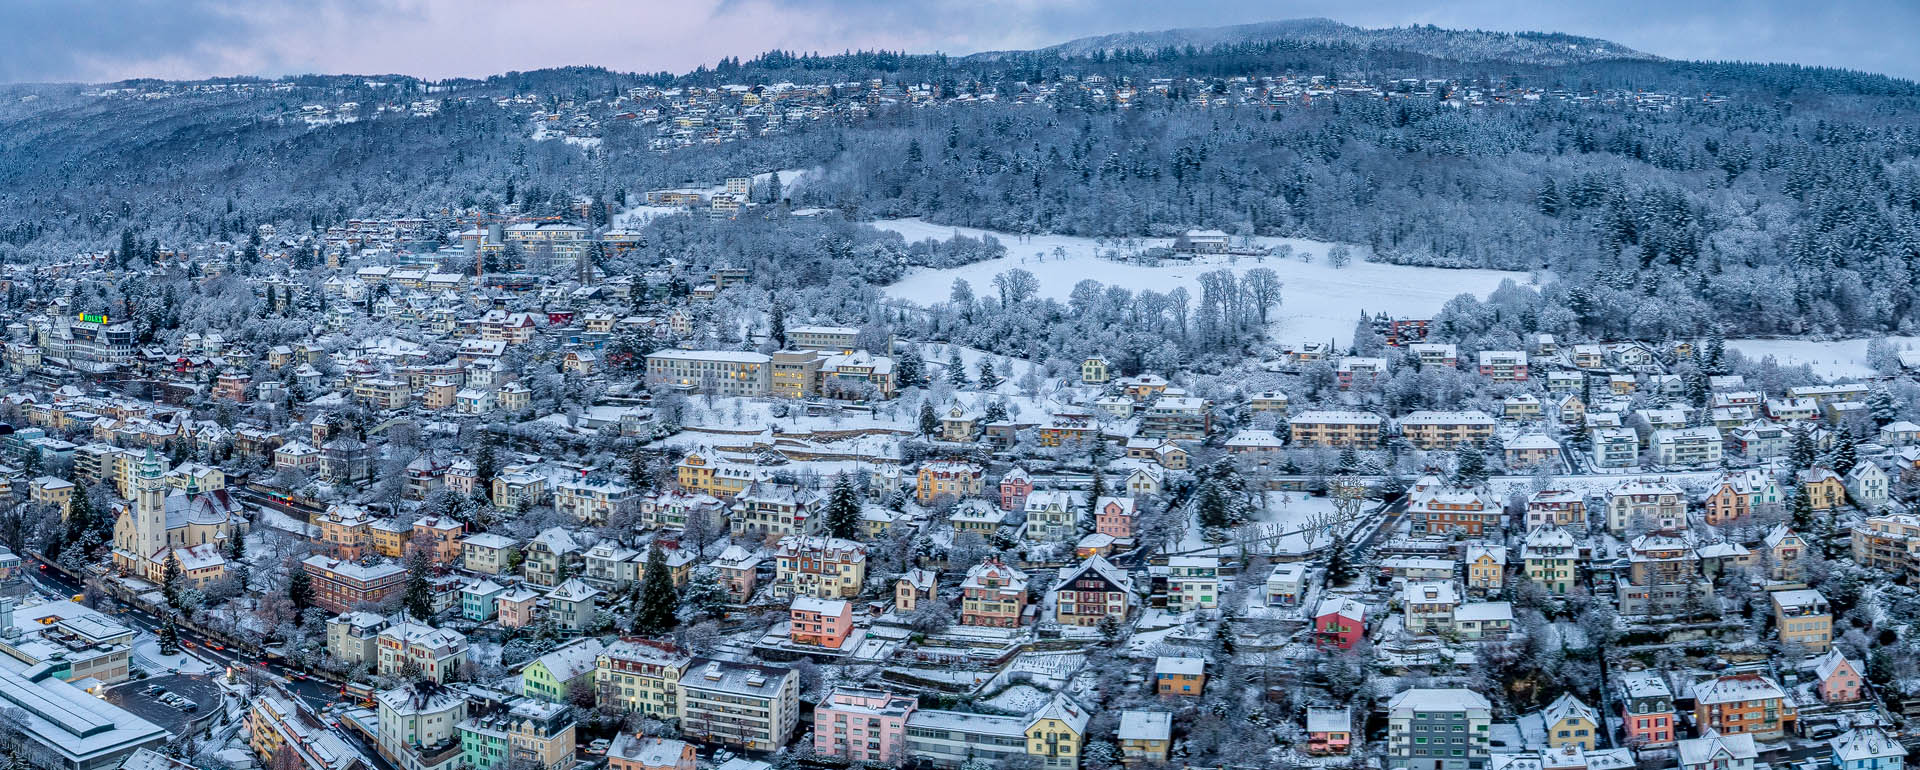 Winter in Biel-Bienne